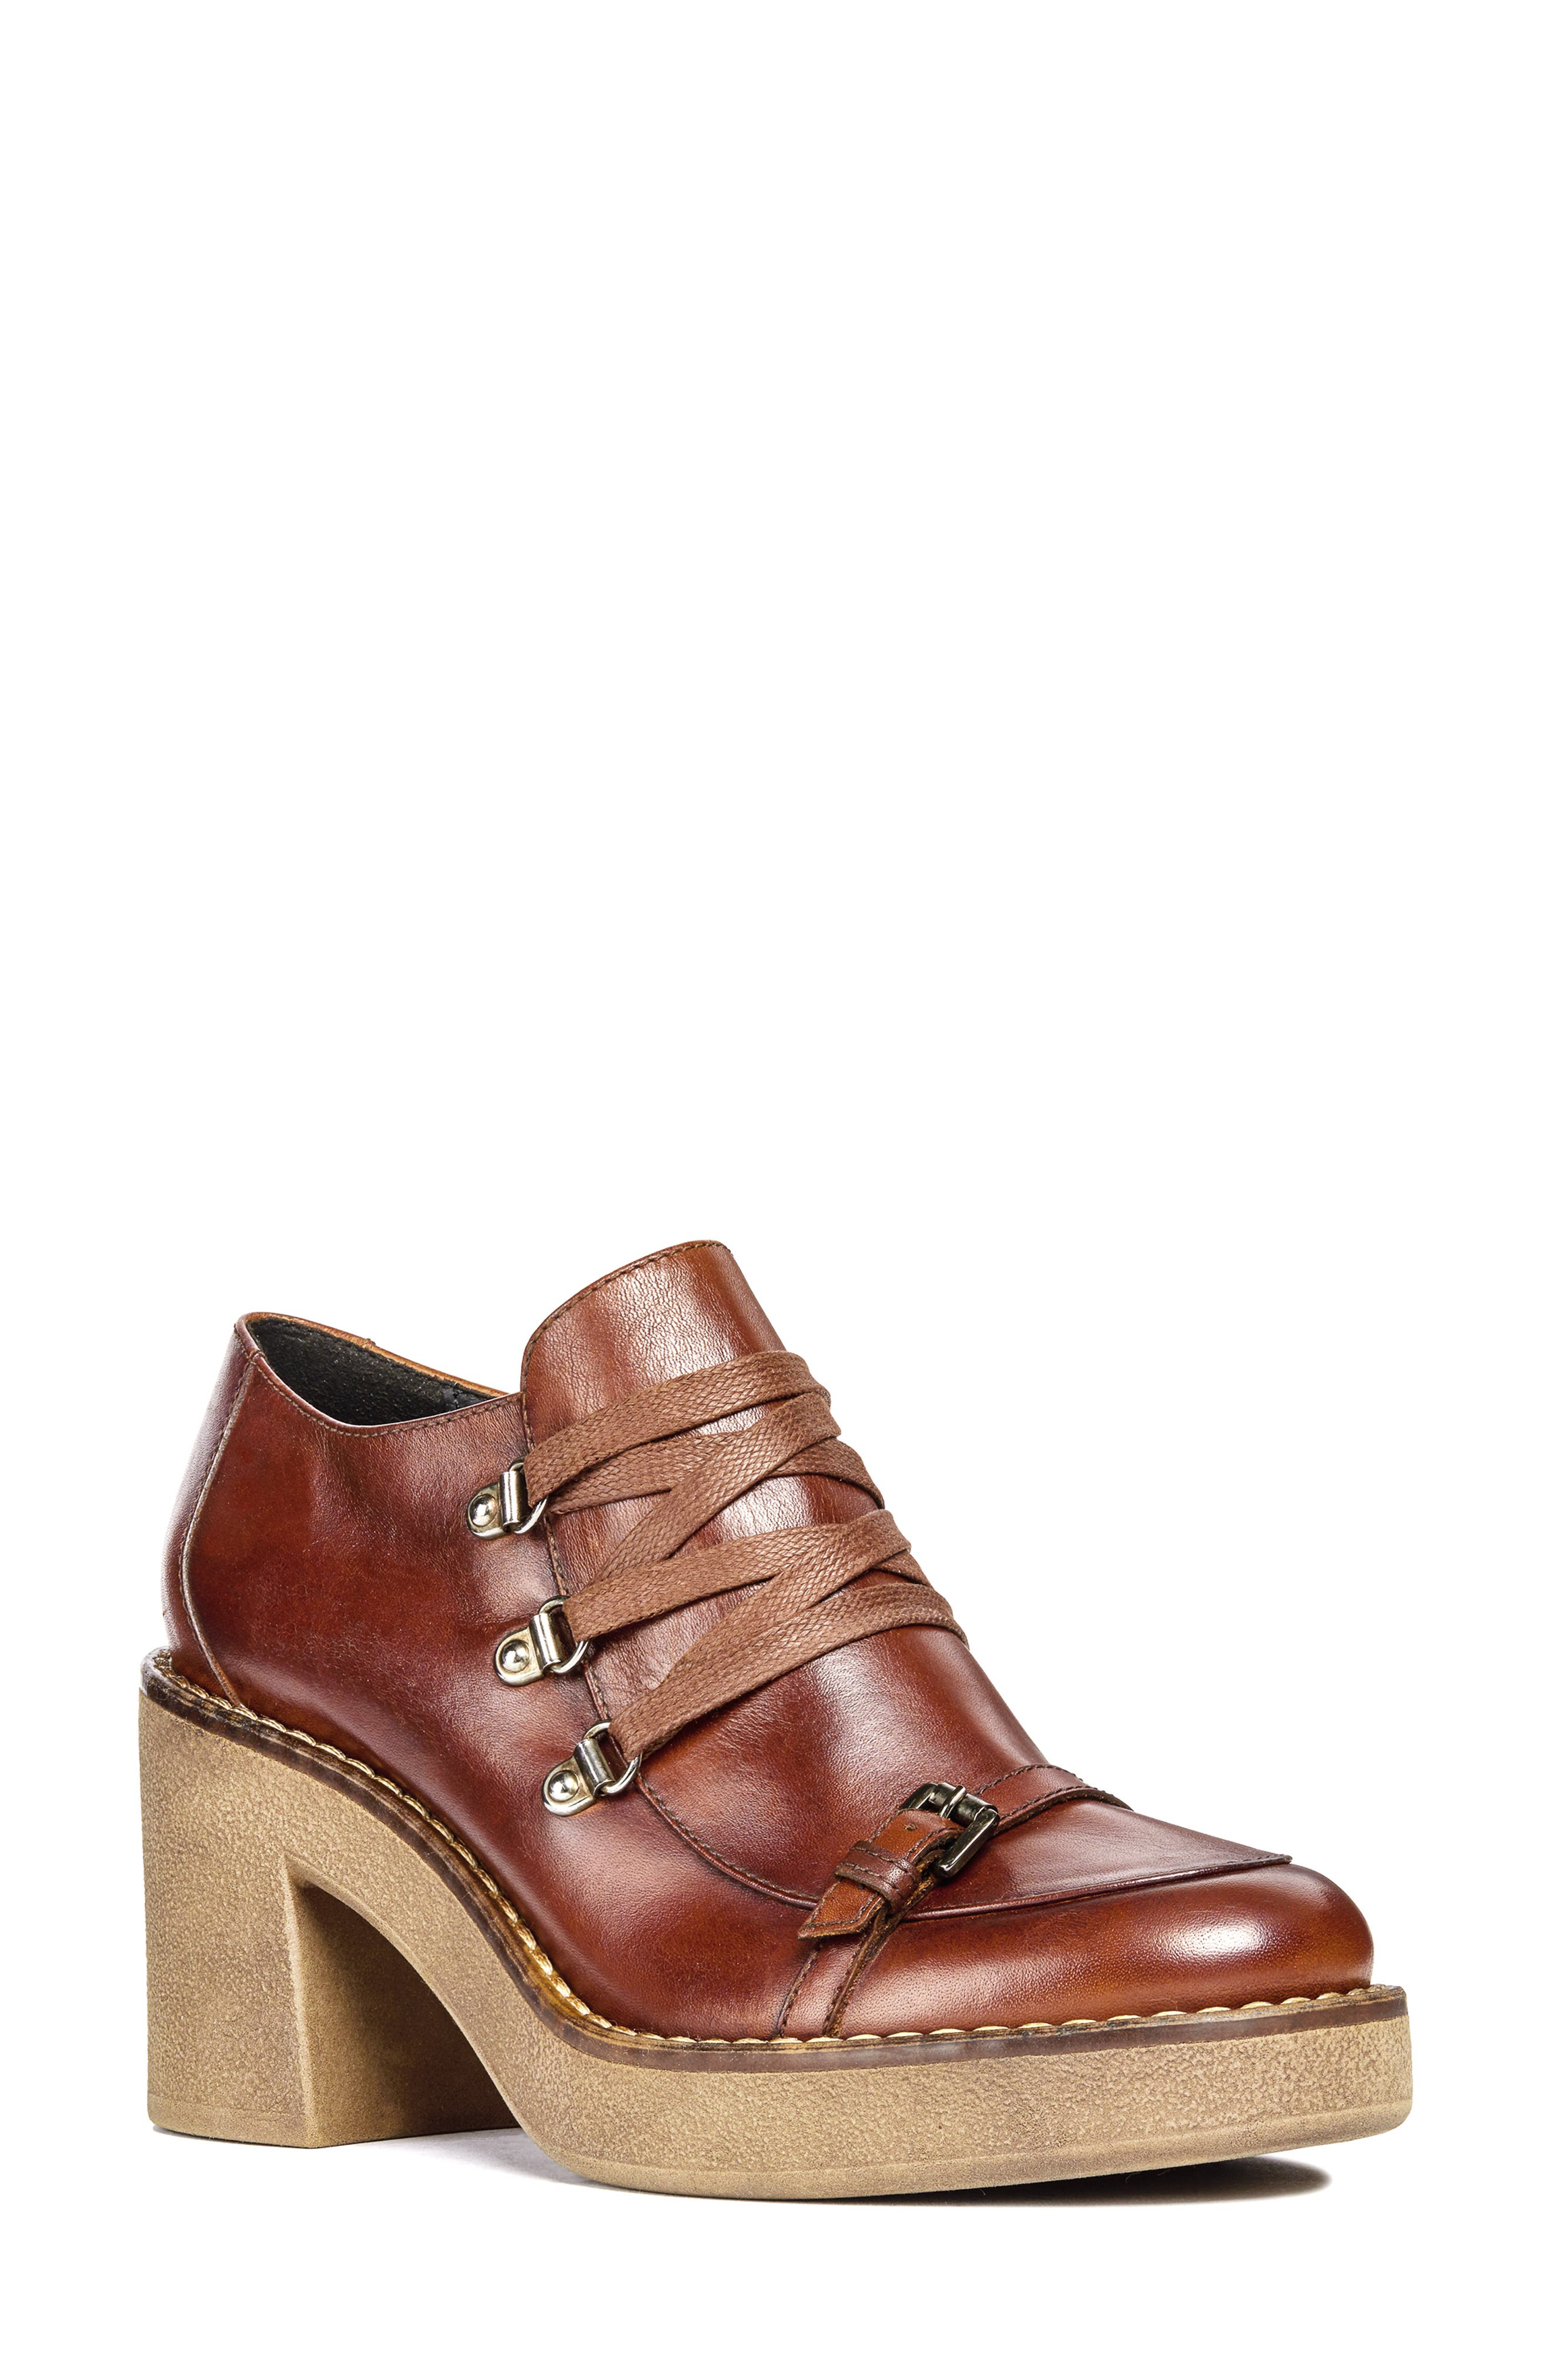 Adrya Bootie,                         Main,                         color, BROWN LEATHER